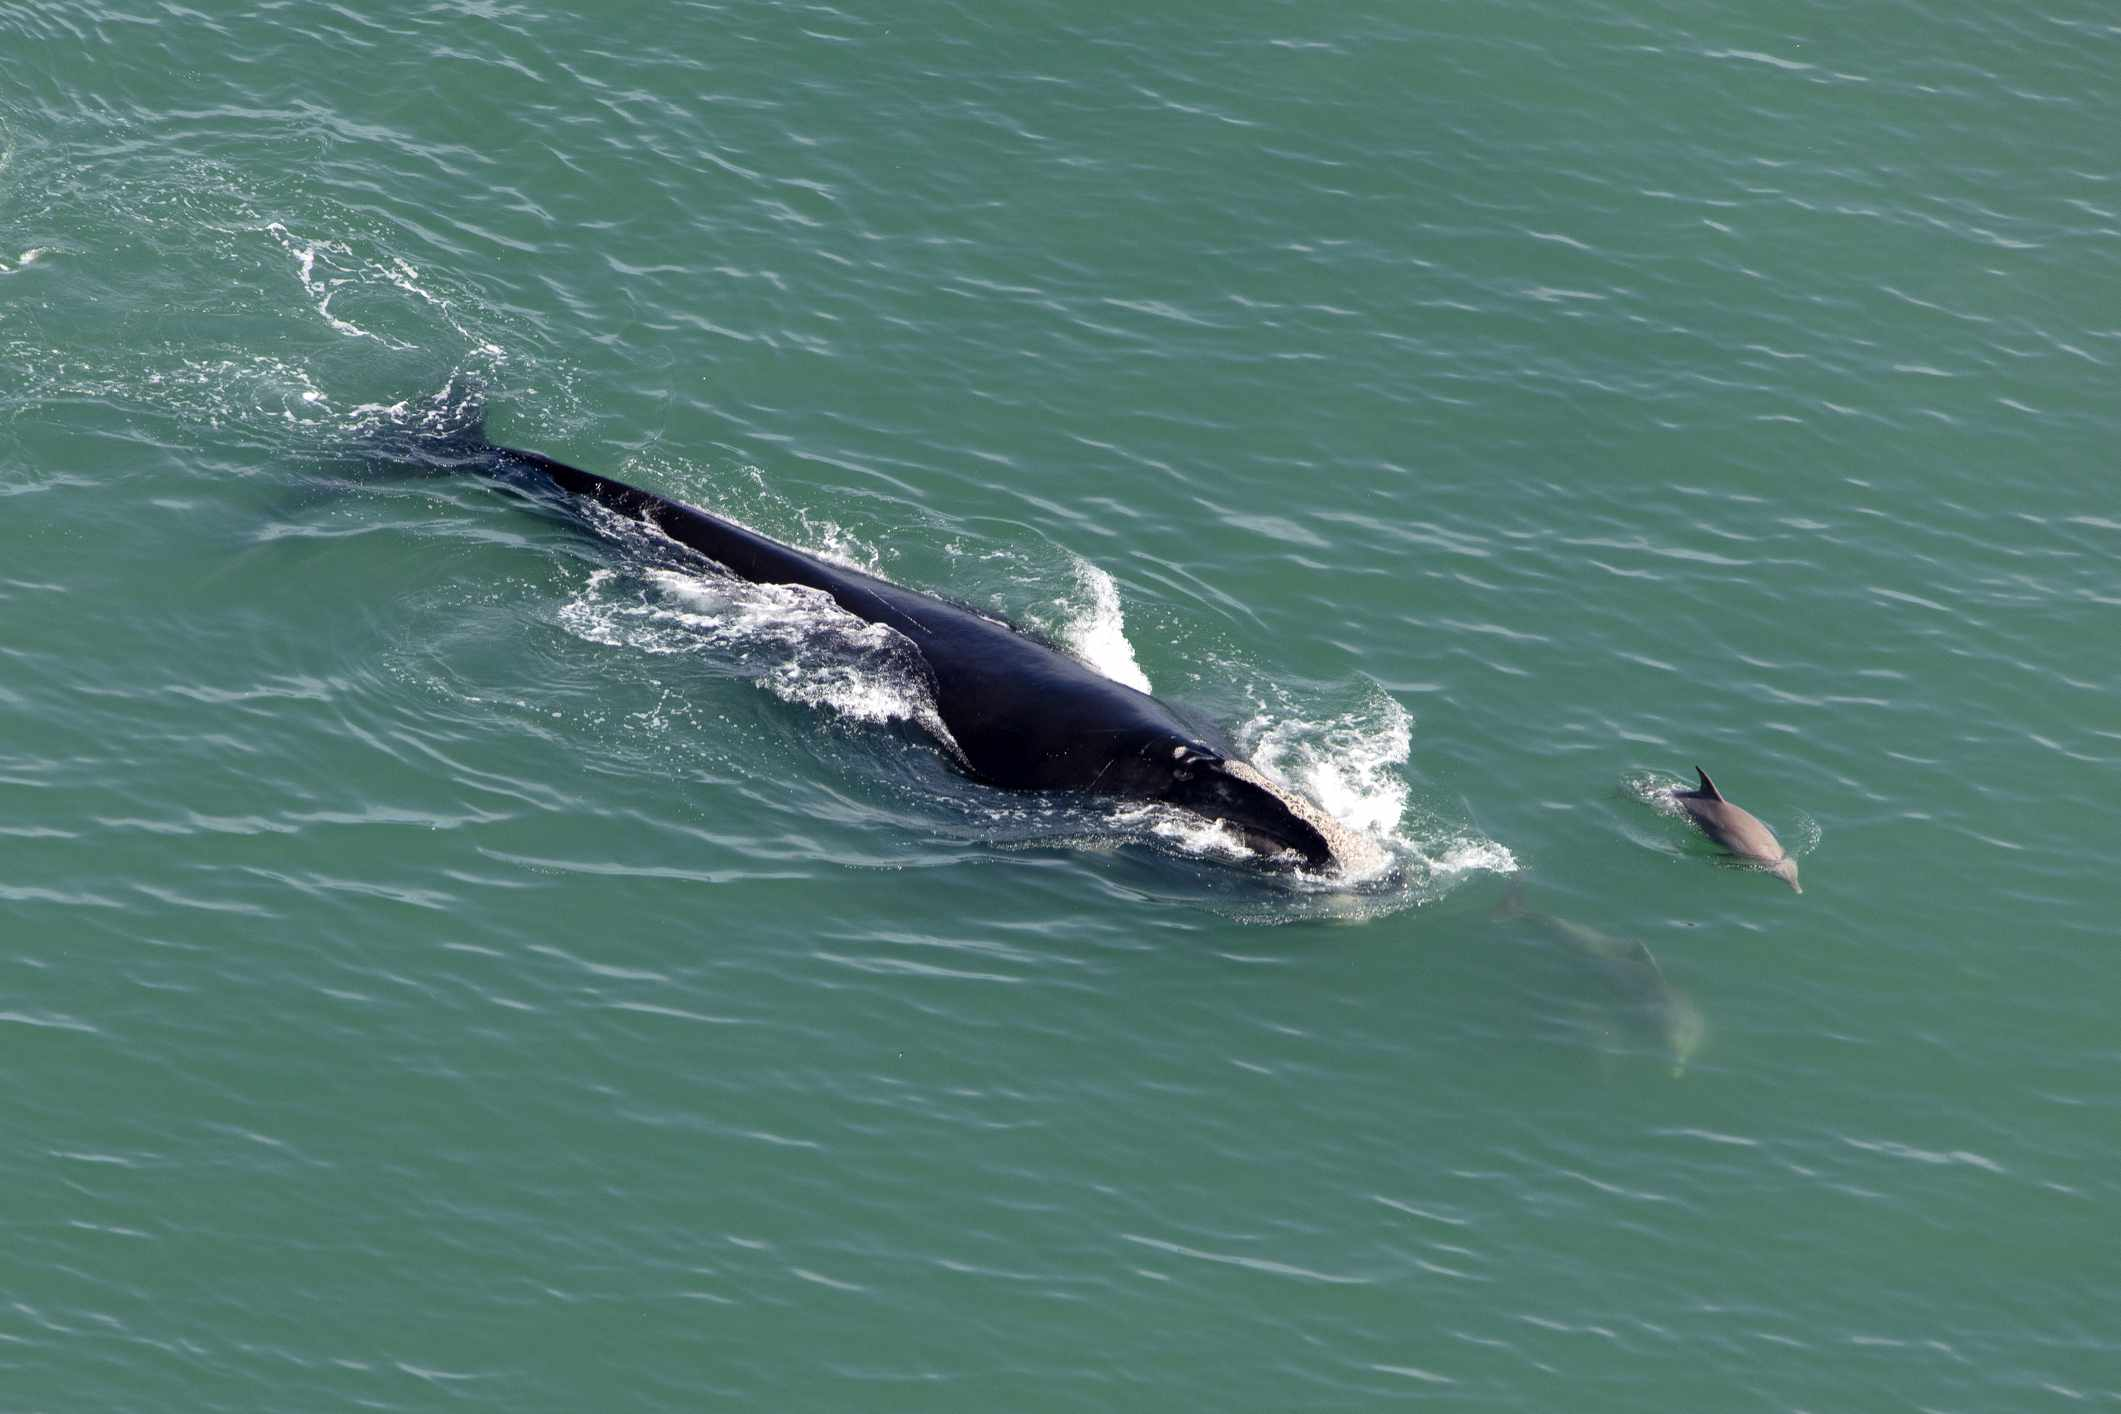 North Atlantic right whale surfacing the ocean surrounded by porpoises